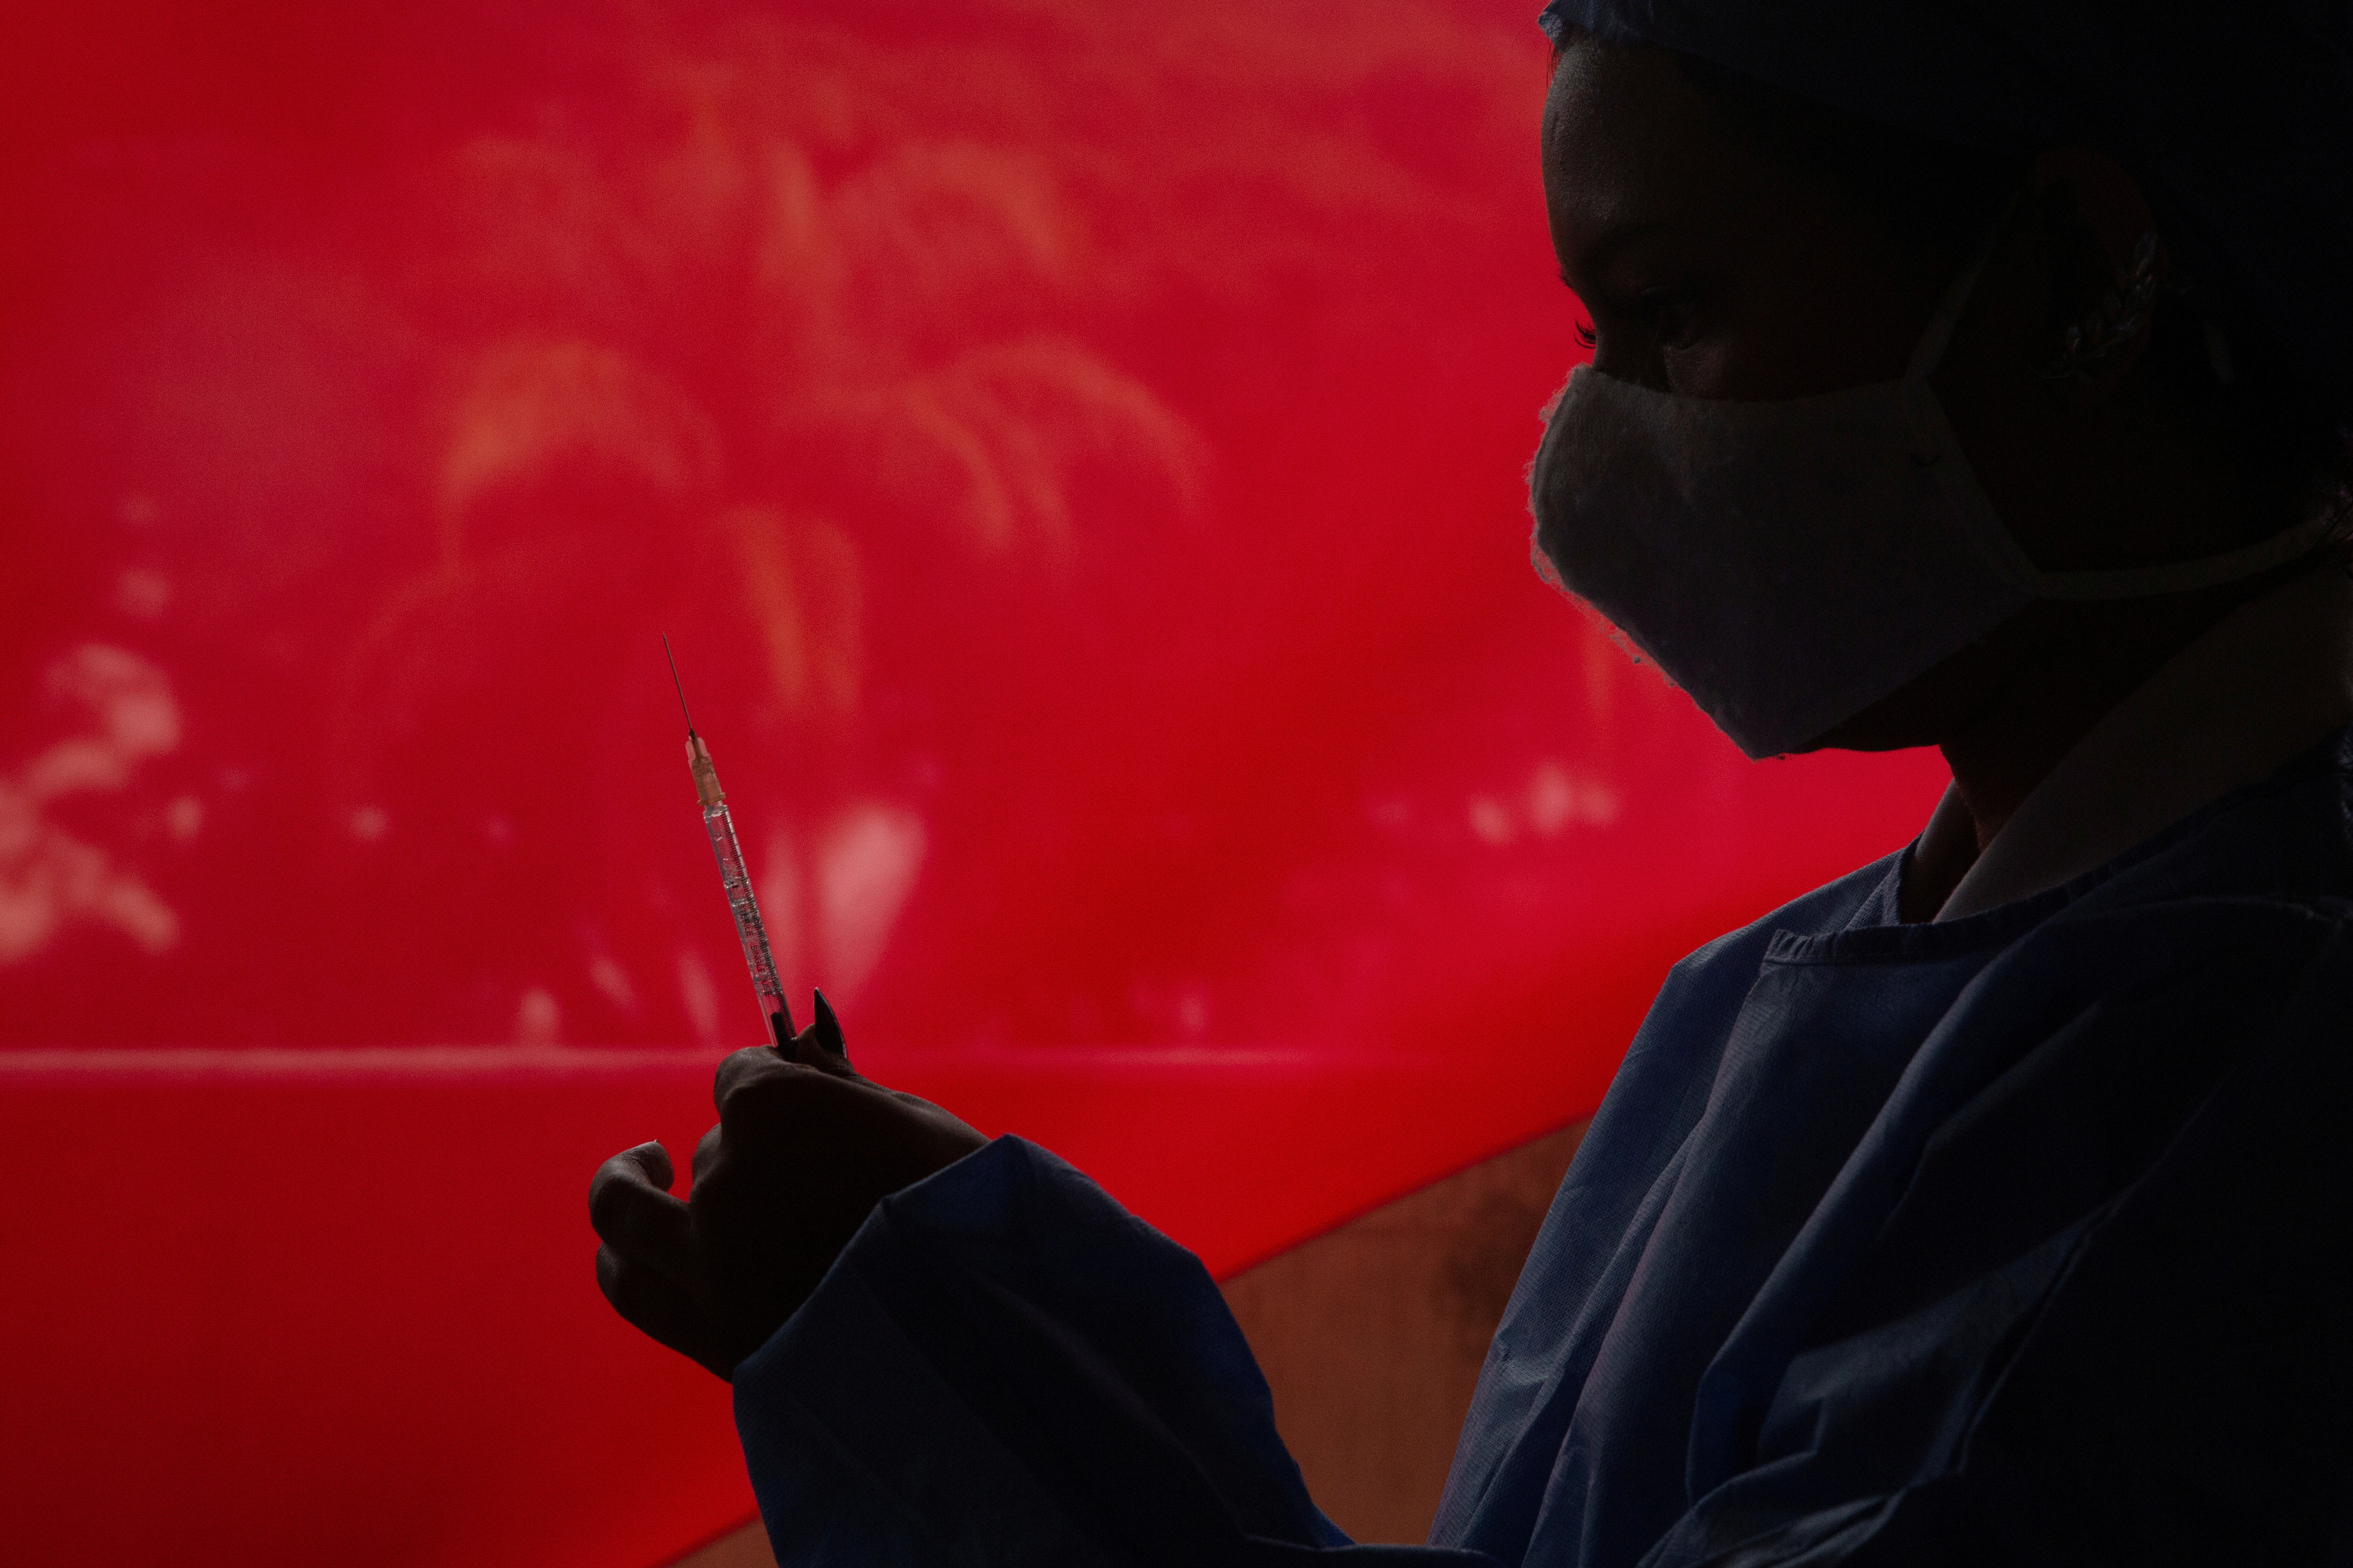 A healthcare worker prepares a dose of Russia's Sputnik V vaccine against the coronavirus disease (COVID-19), in the parking lot of the Social Security Institute of the Armed Forces, turned into a mass vaccination centre, in Caracas, Venezuela June 5, 2021. REUTERS/Leonardo Fernandez Viloria